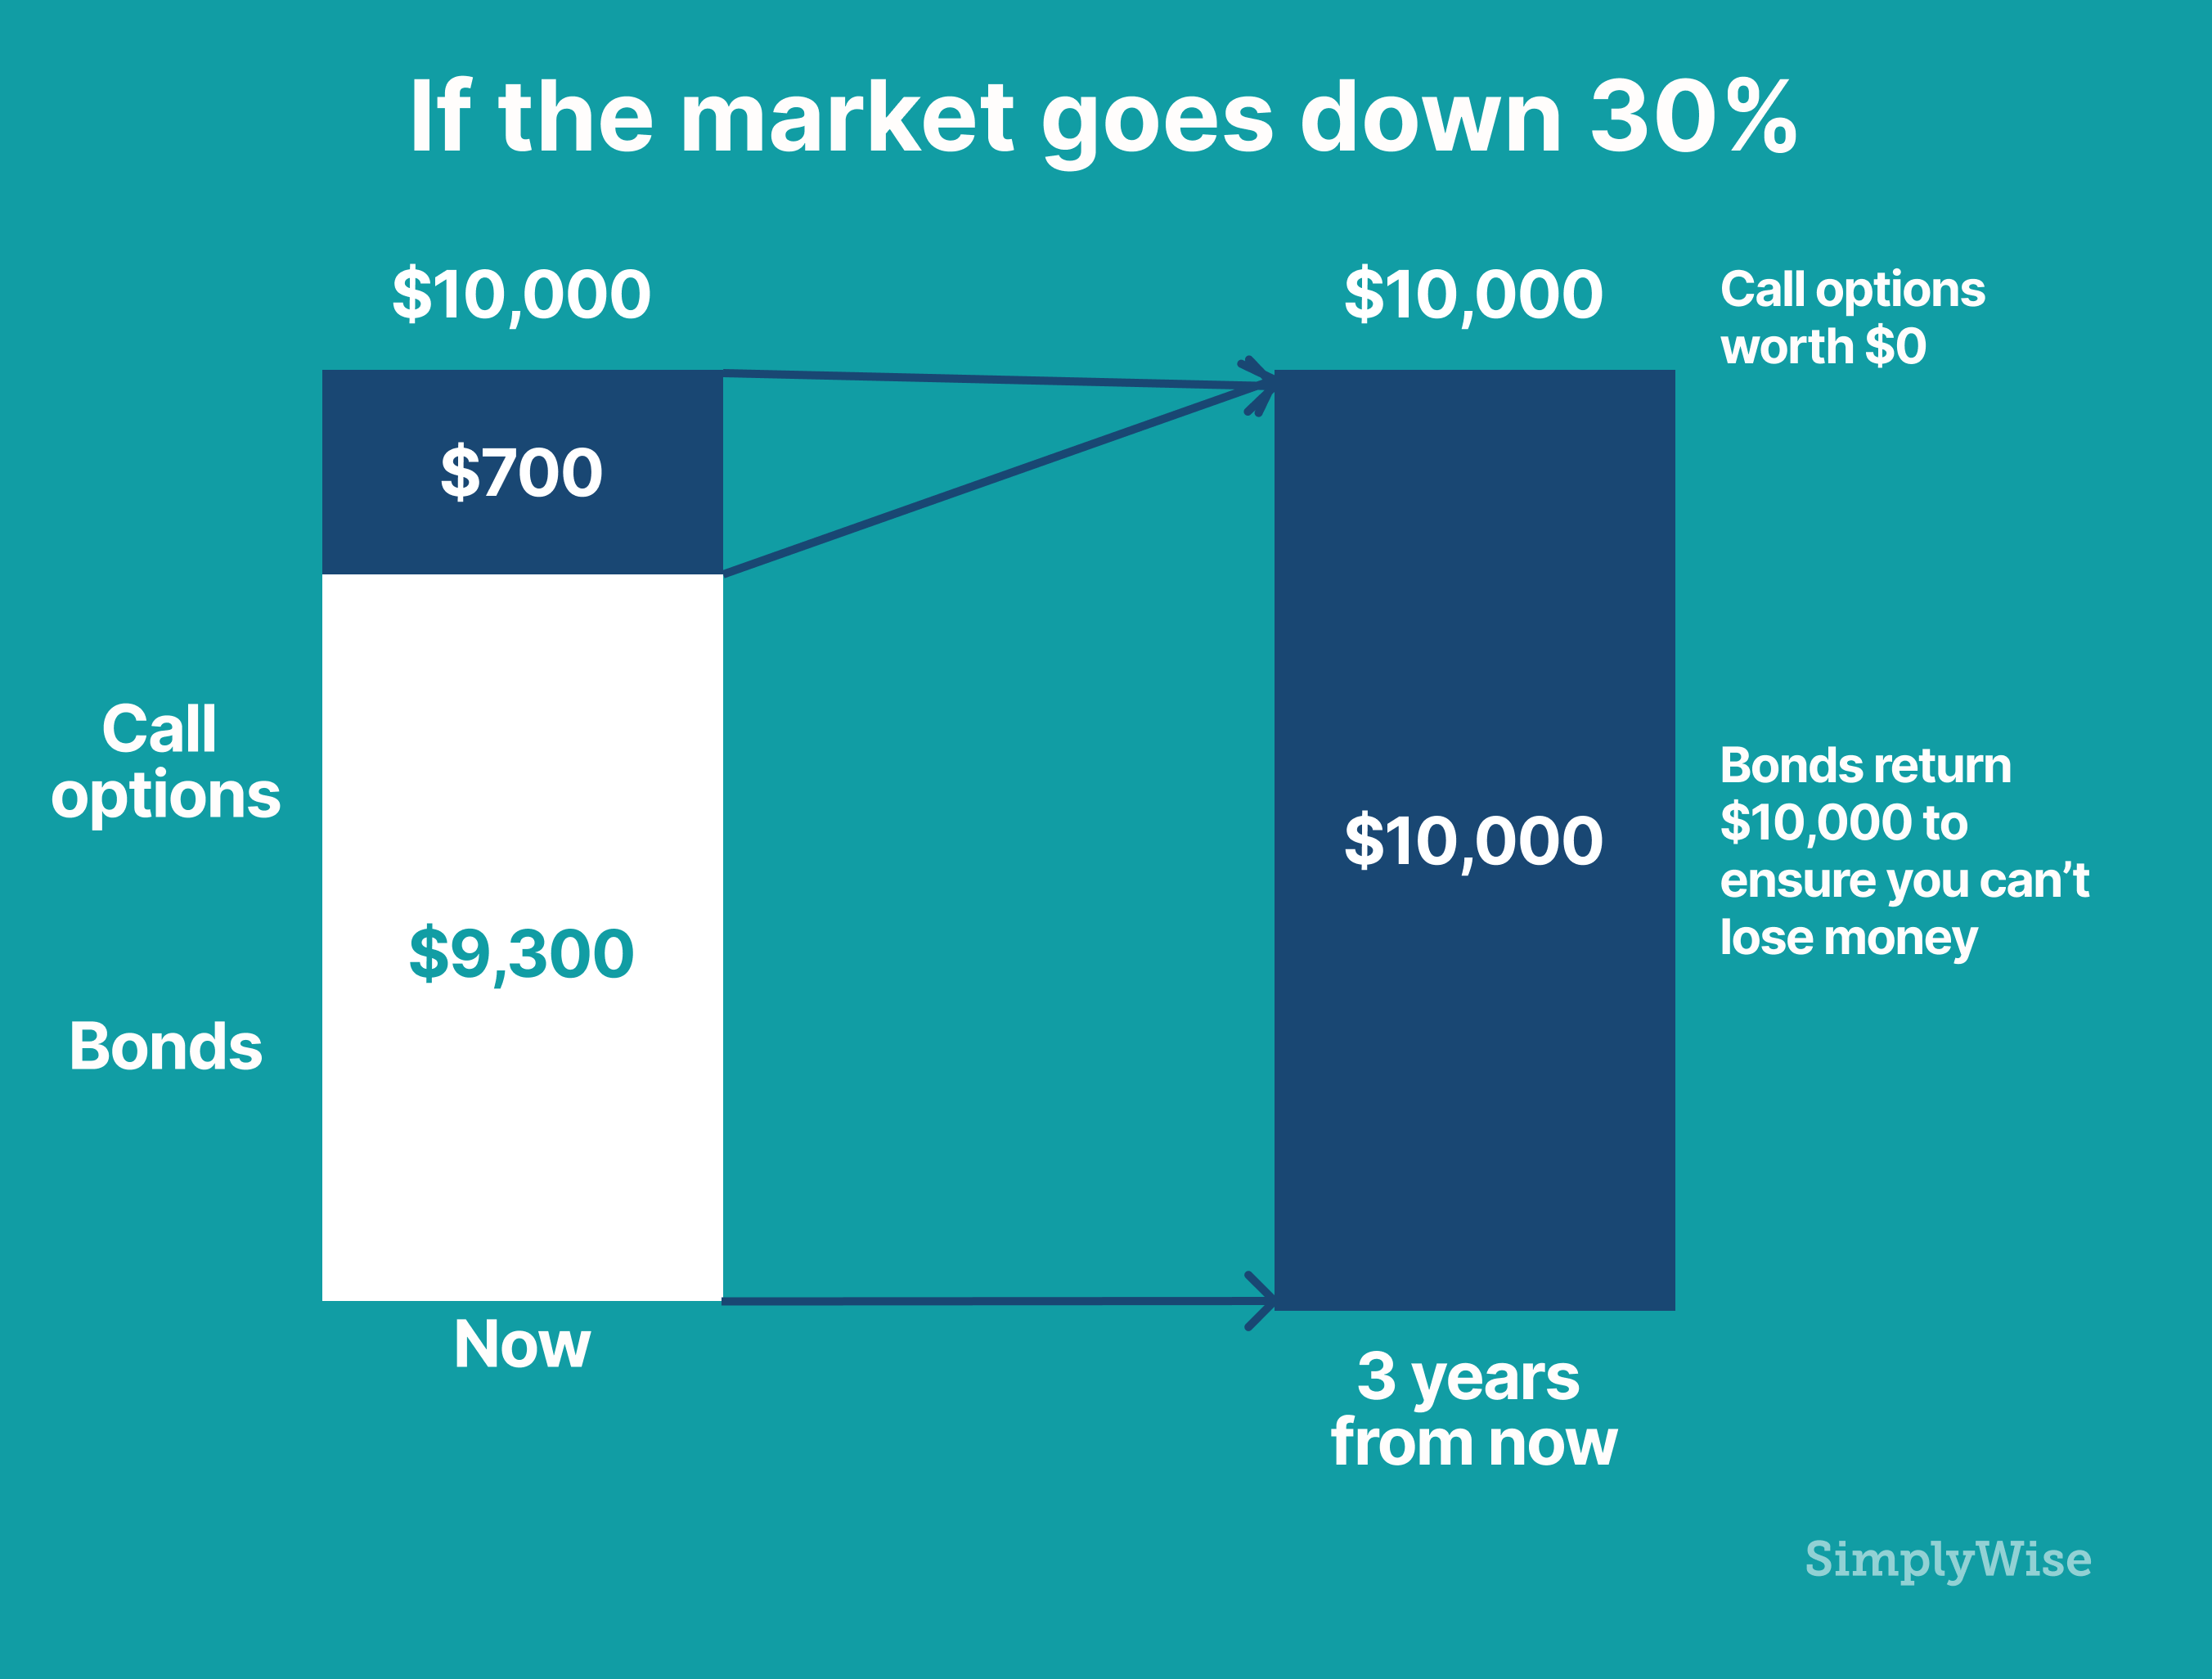 simplywise If the market goes down 30%